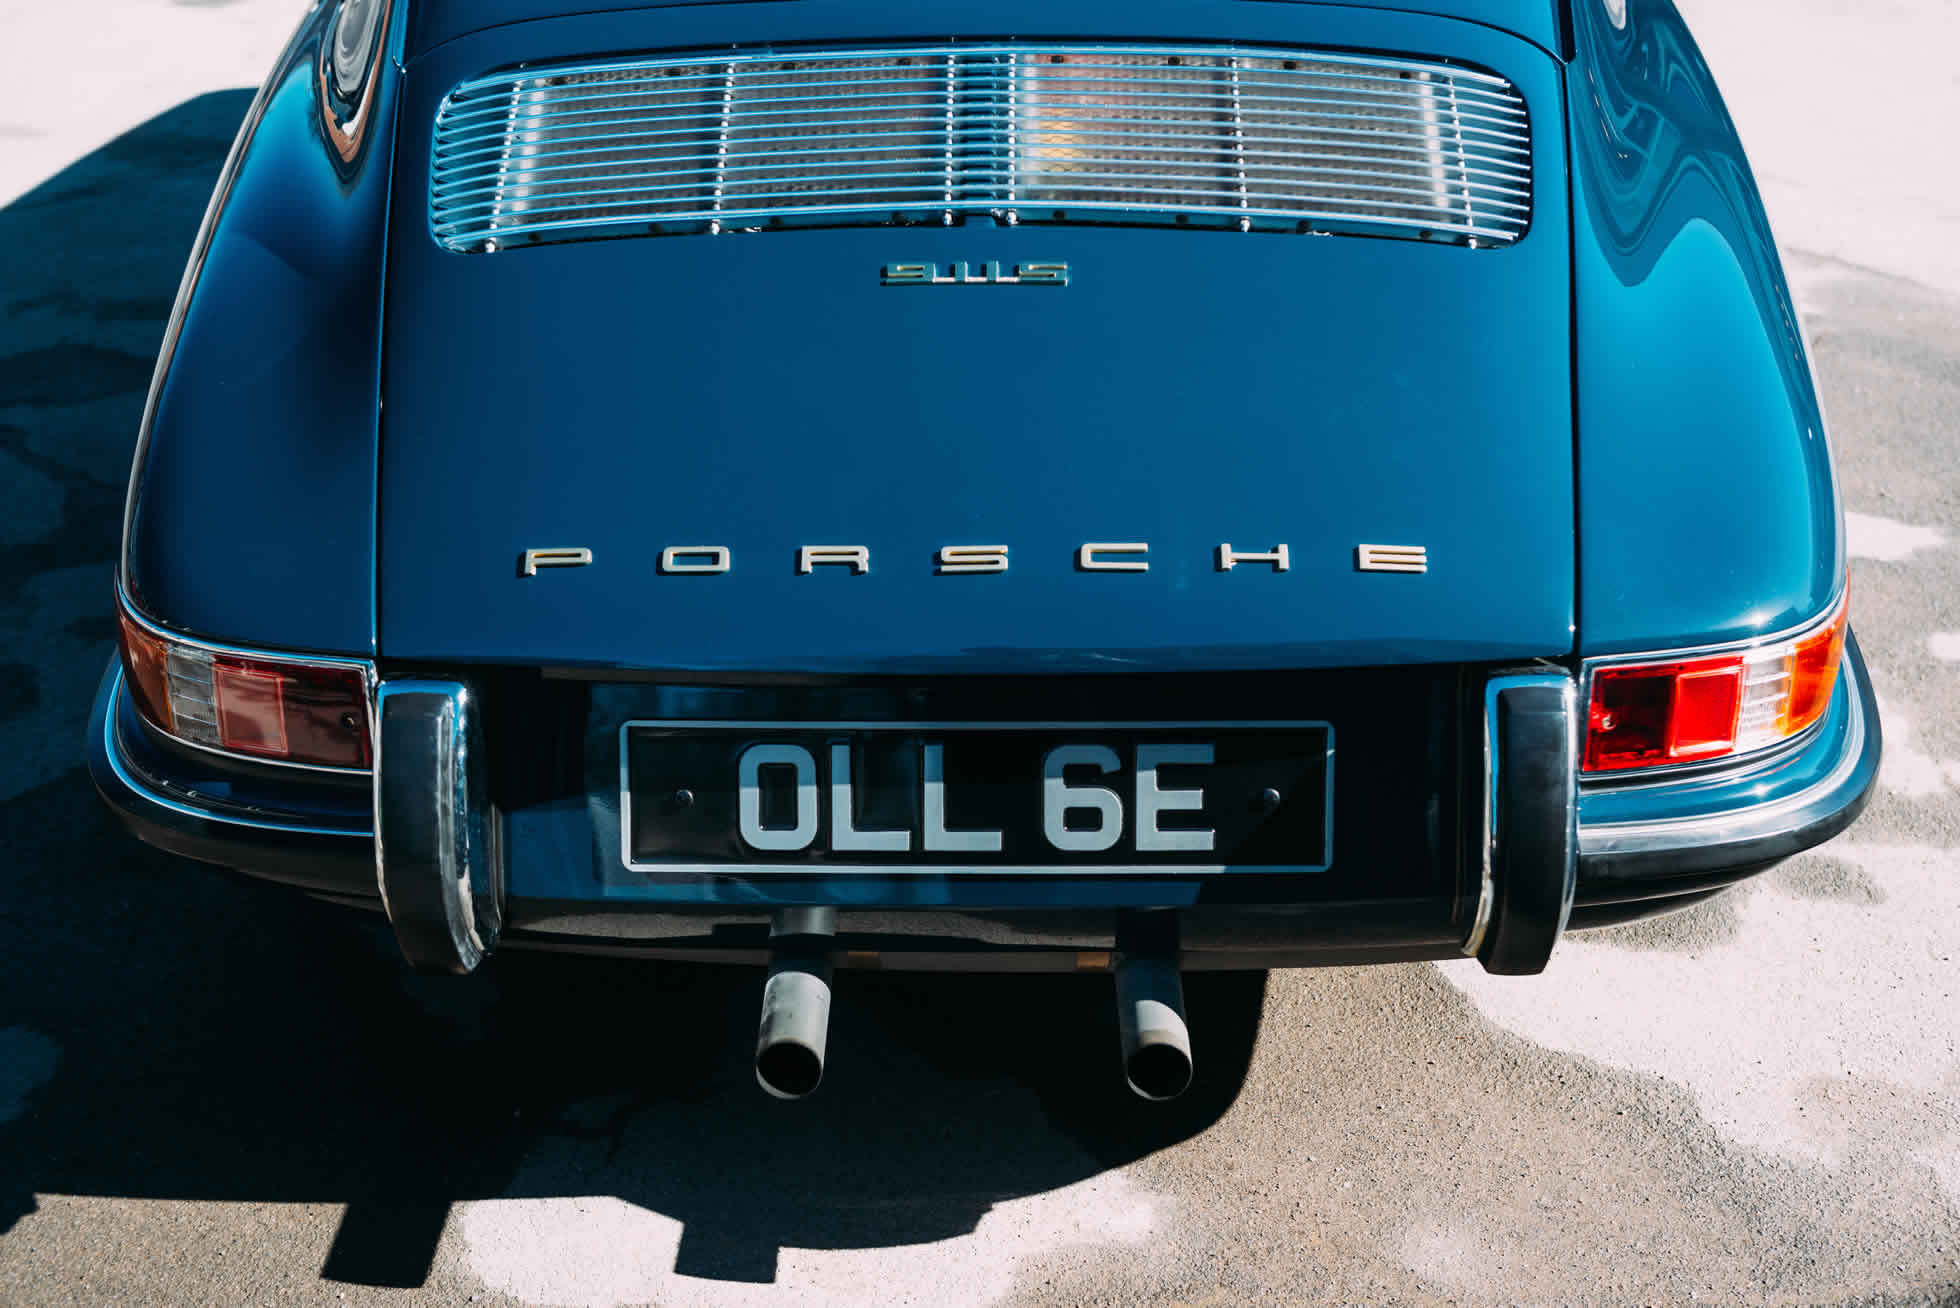 For Sale 1967 Porsche 911 S rear view alternative